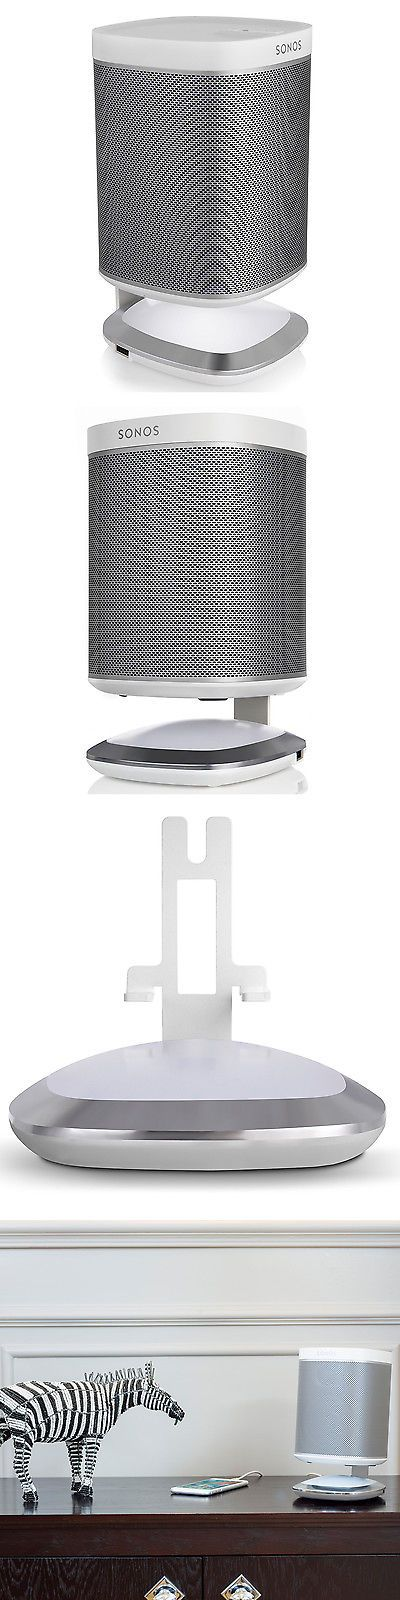 Speaker Mounts and Stands: Flexson Illuminated Charging Stand For Sonos Play:1 (White) -> BUY IT NOW ONLY: $59.99 on eBay!